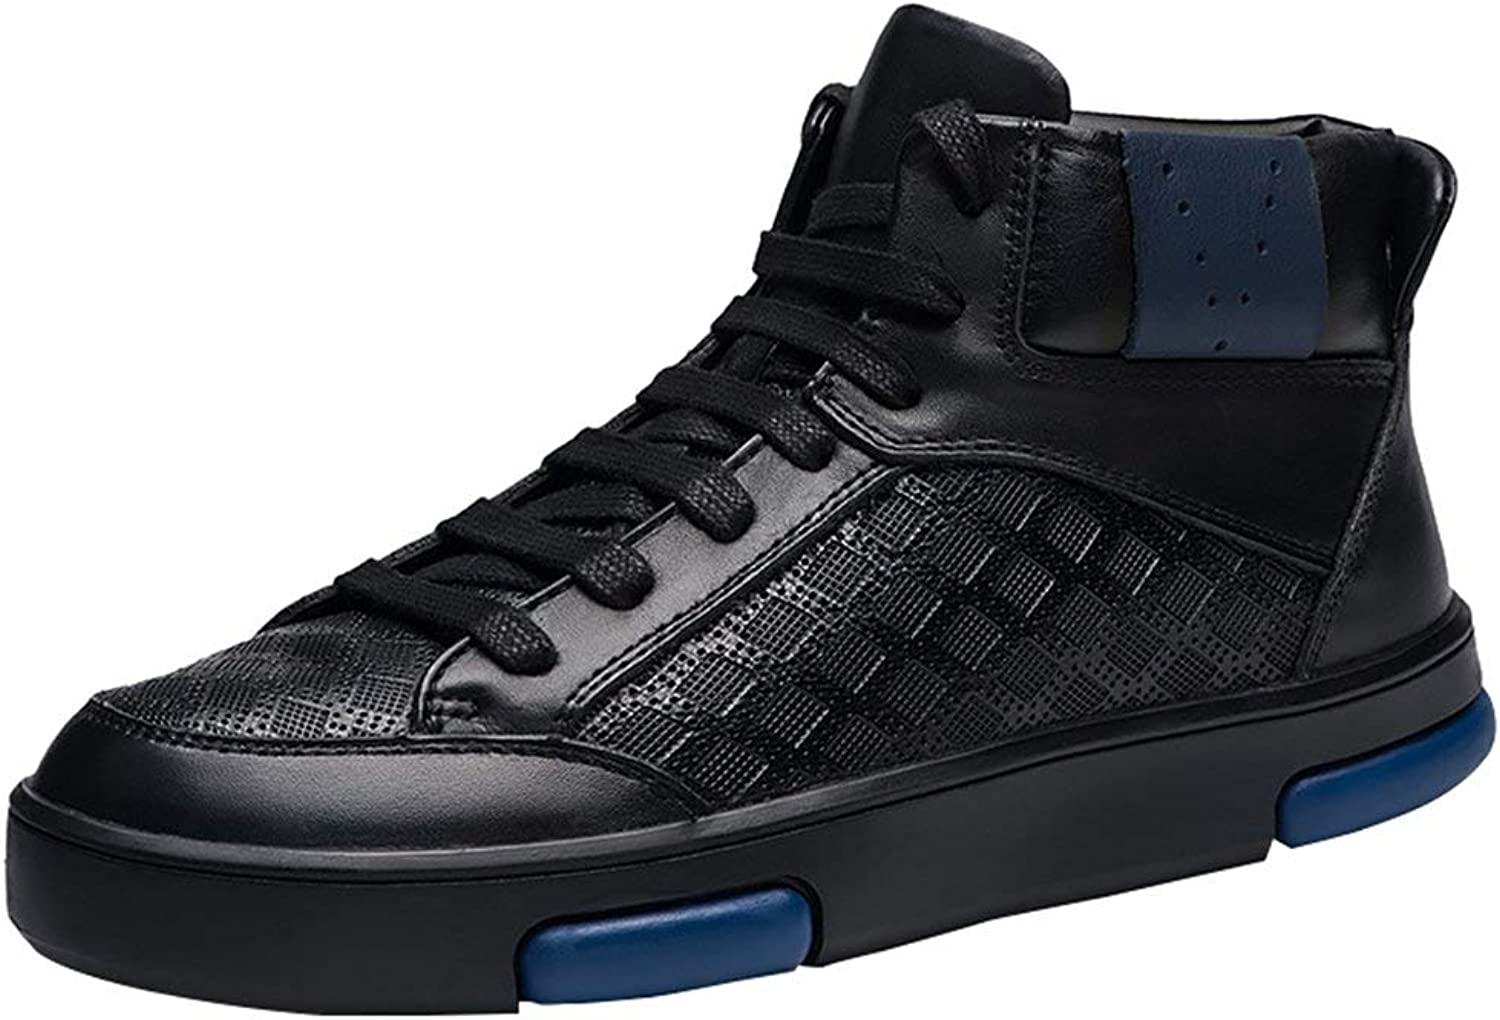 9d014375b873b Men's Vintage High Top Faux Fur-Lined Lace-up Leather Sneakers Warm ...